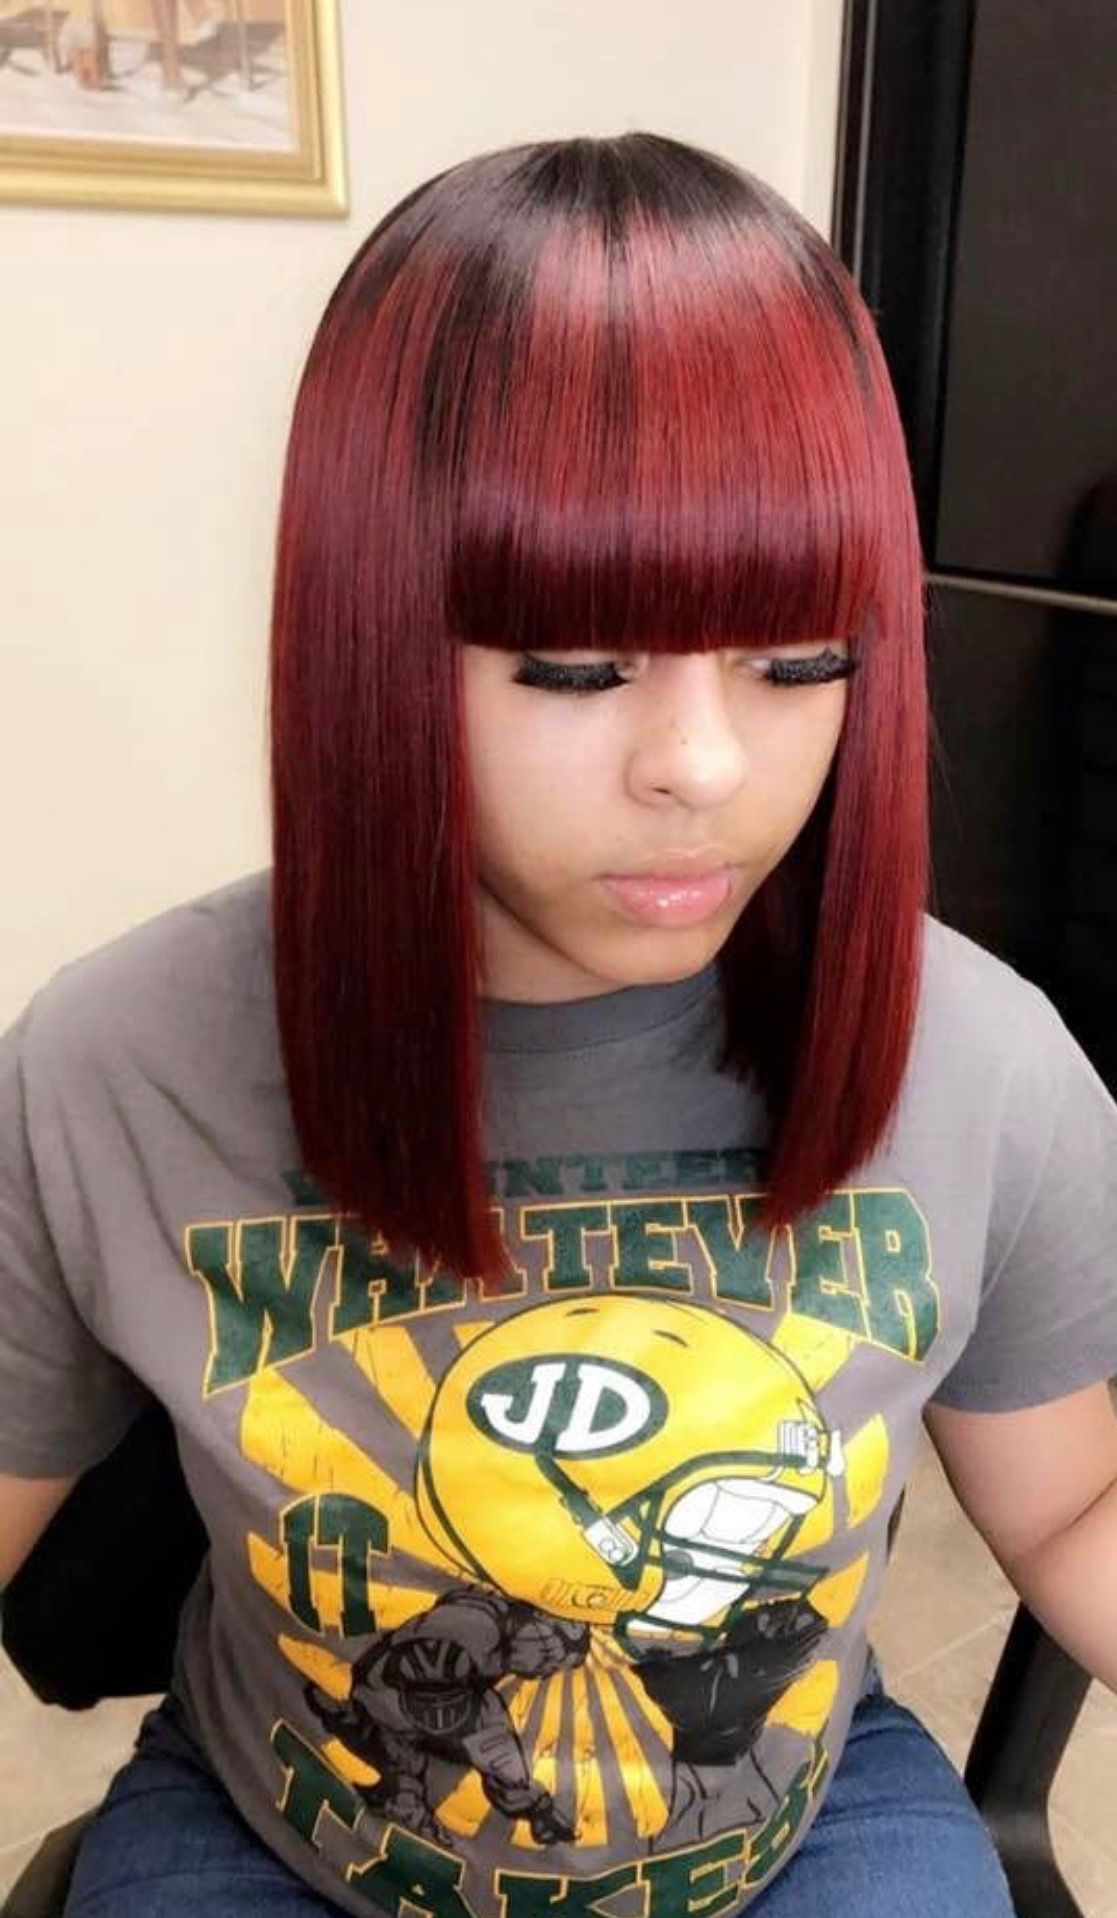 Sew In Weave Colored Burgundy With Bangs Bob Shoulder Length With Closure Weavehairstyleswavy Quick Weave Hairstyles Womens Hairstyles Weave Hairstyles